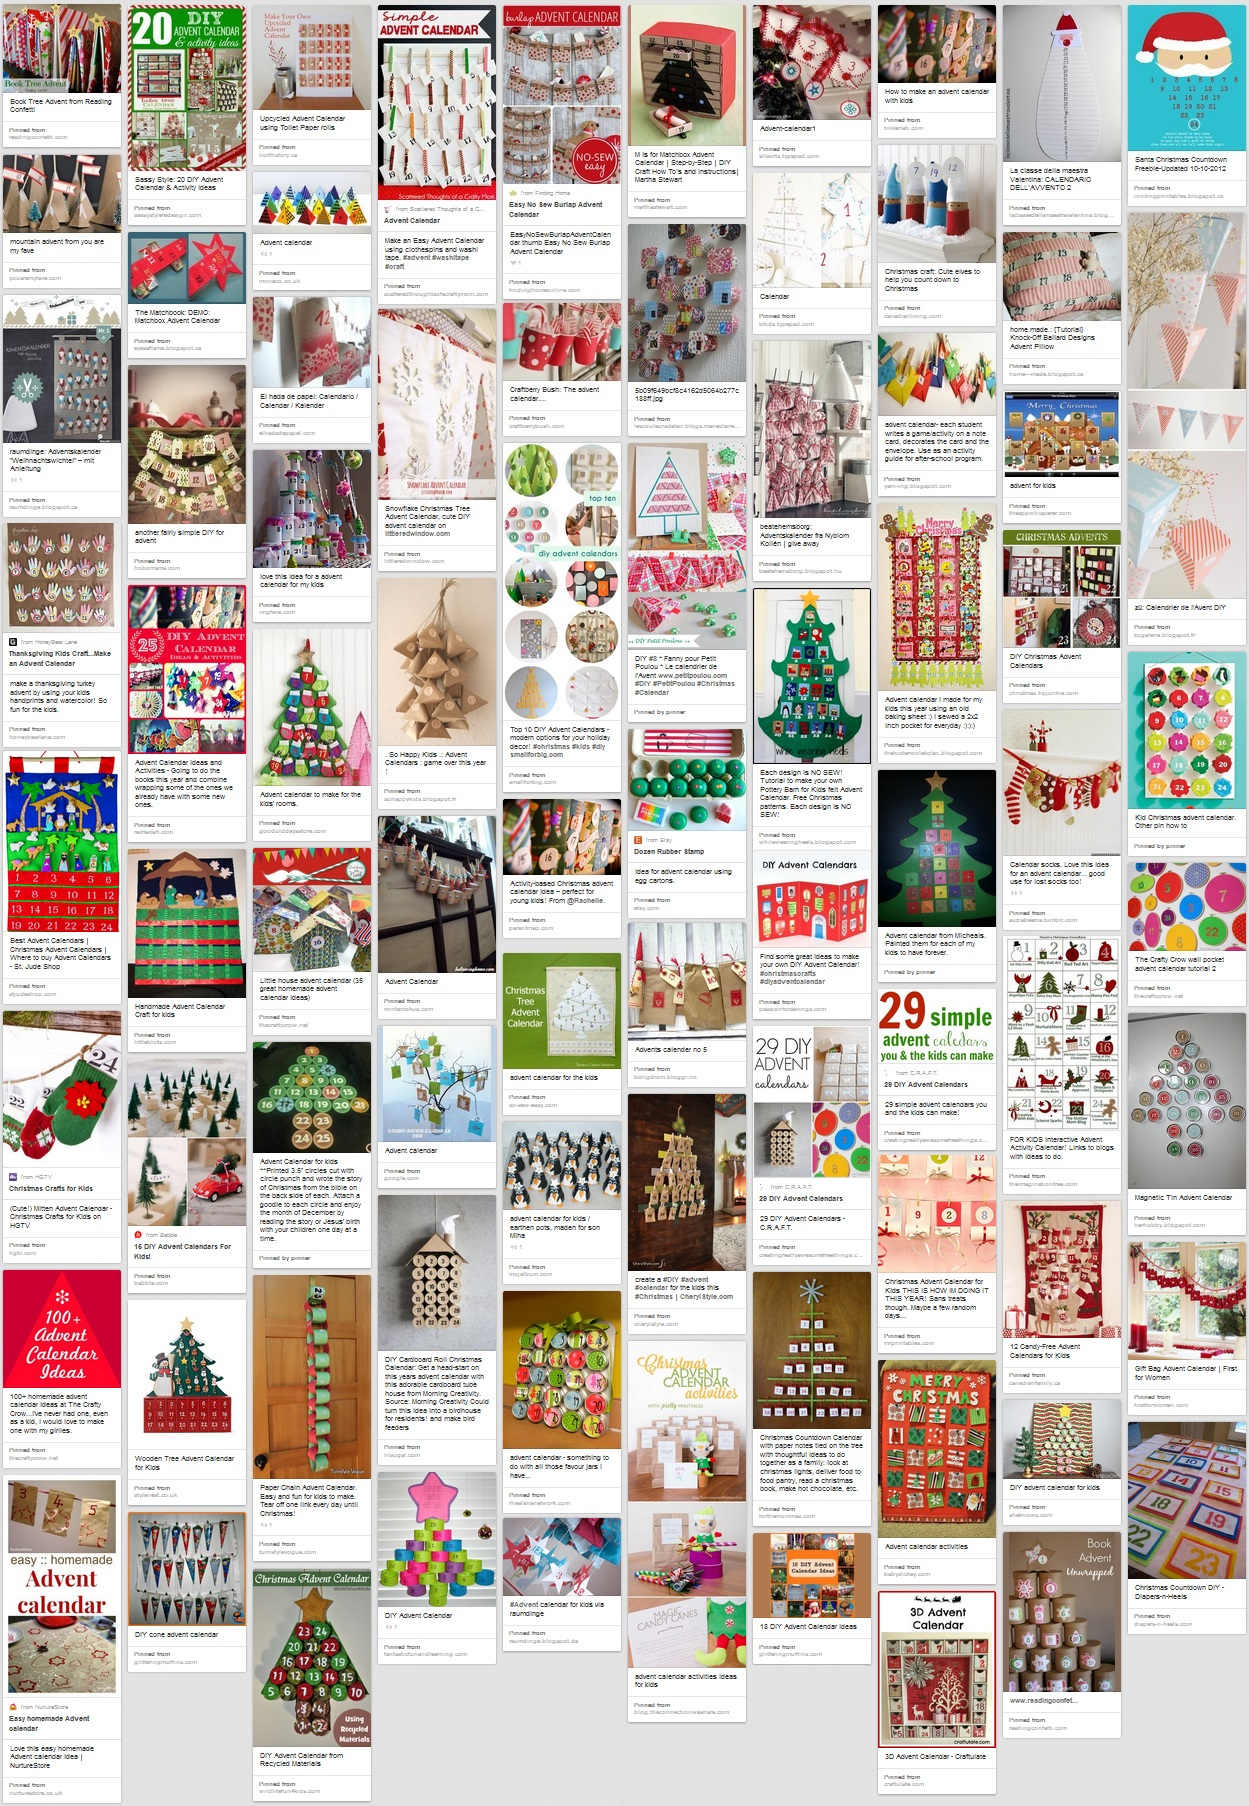 Advent calendars ideas Pinterest board